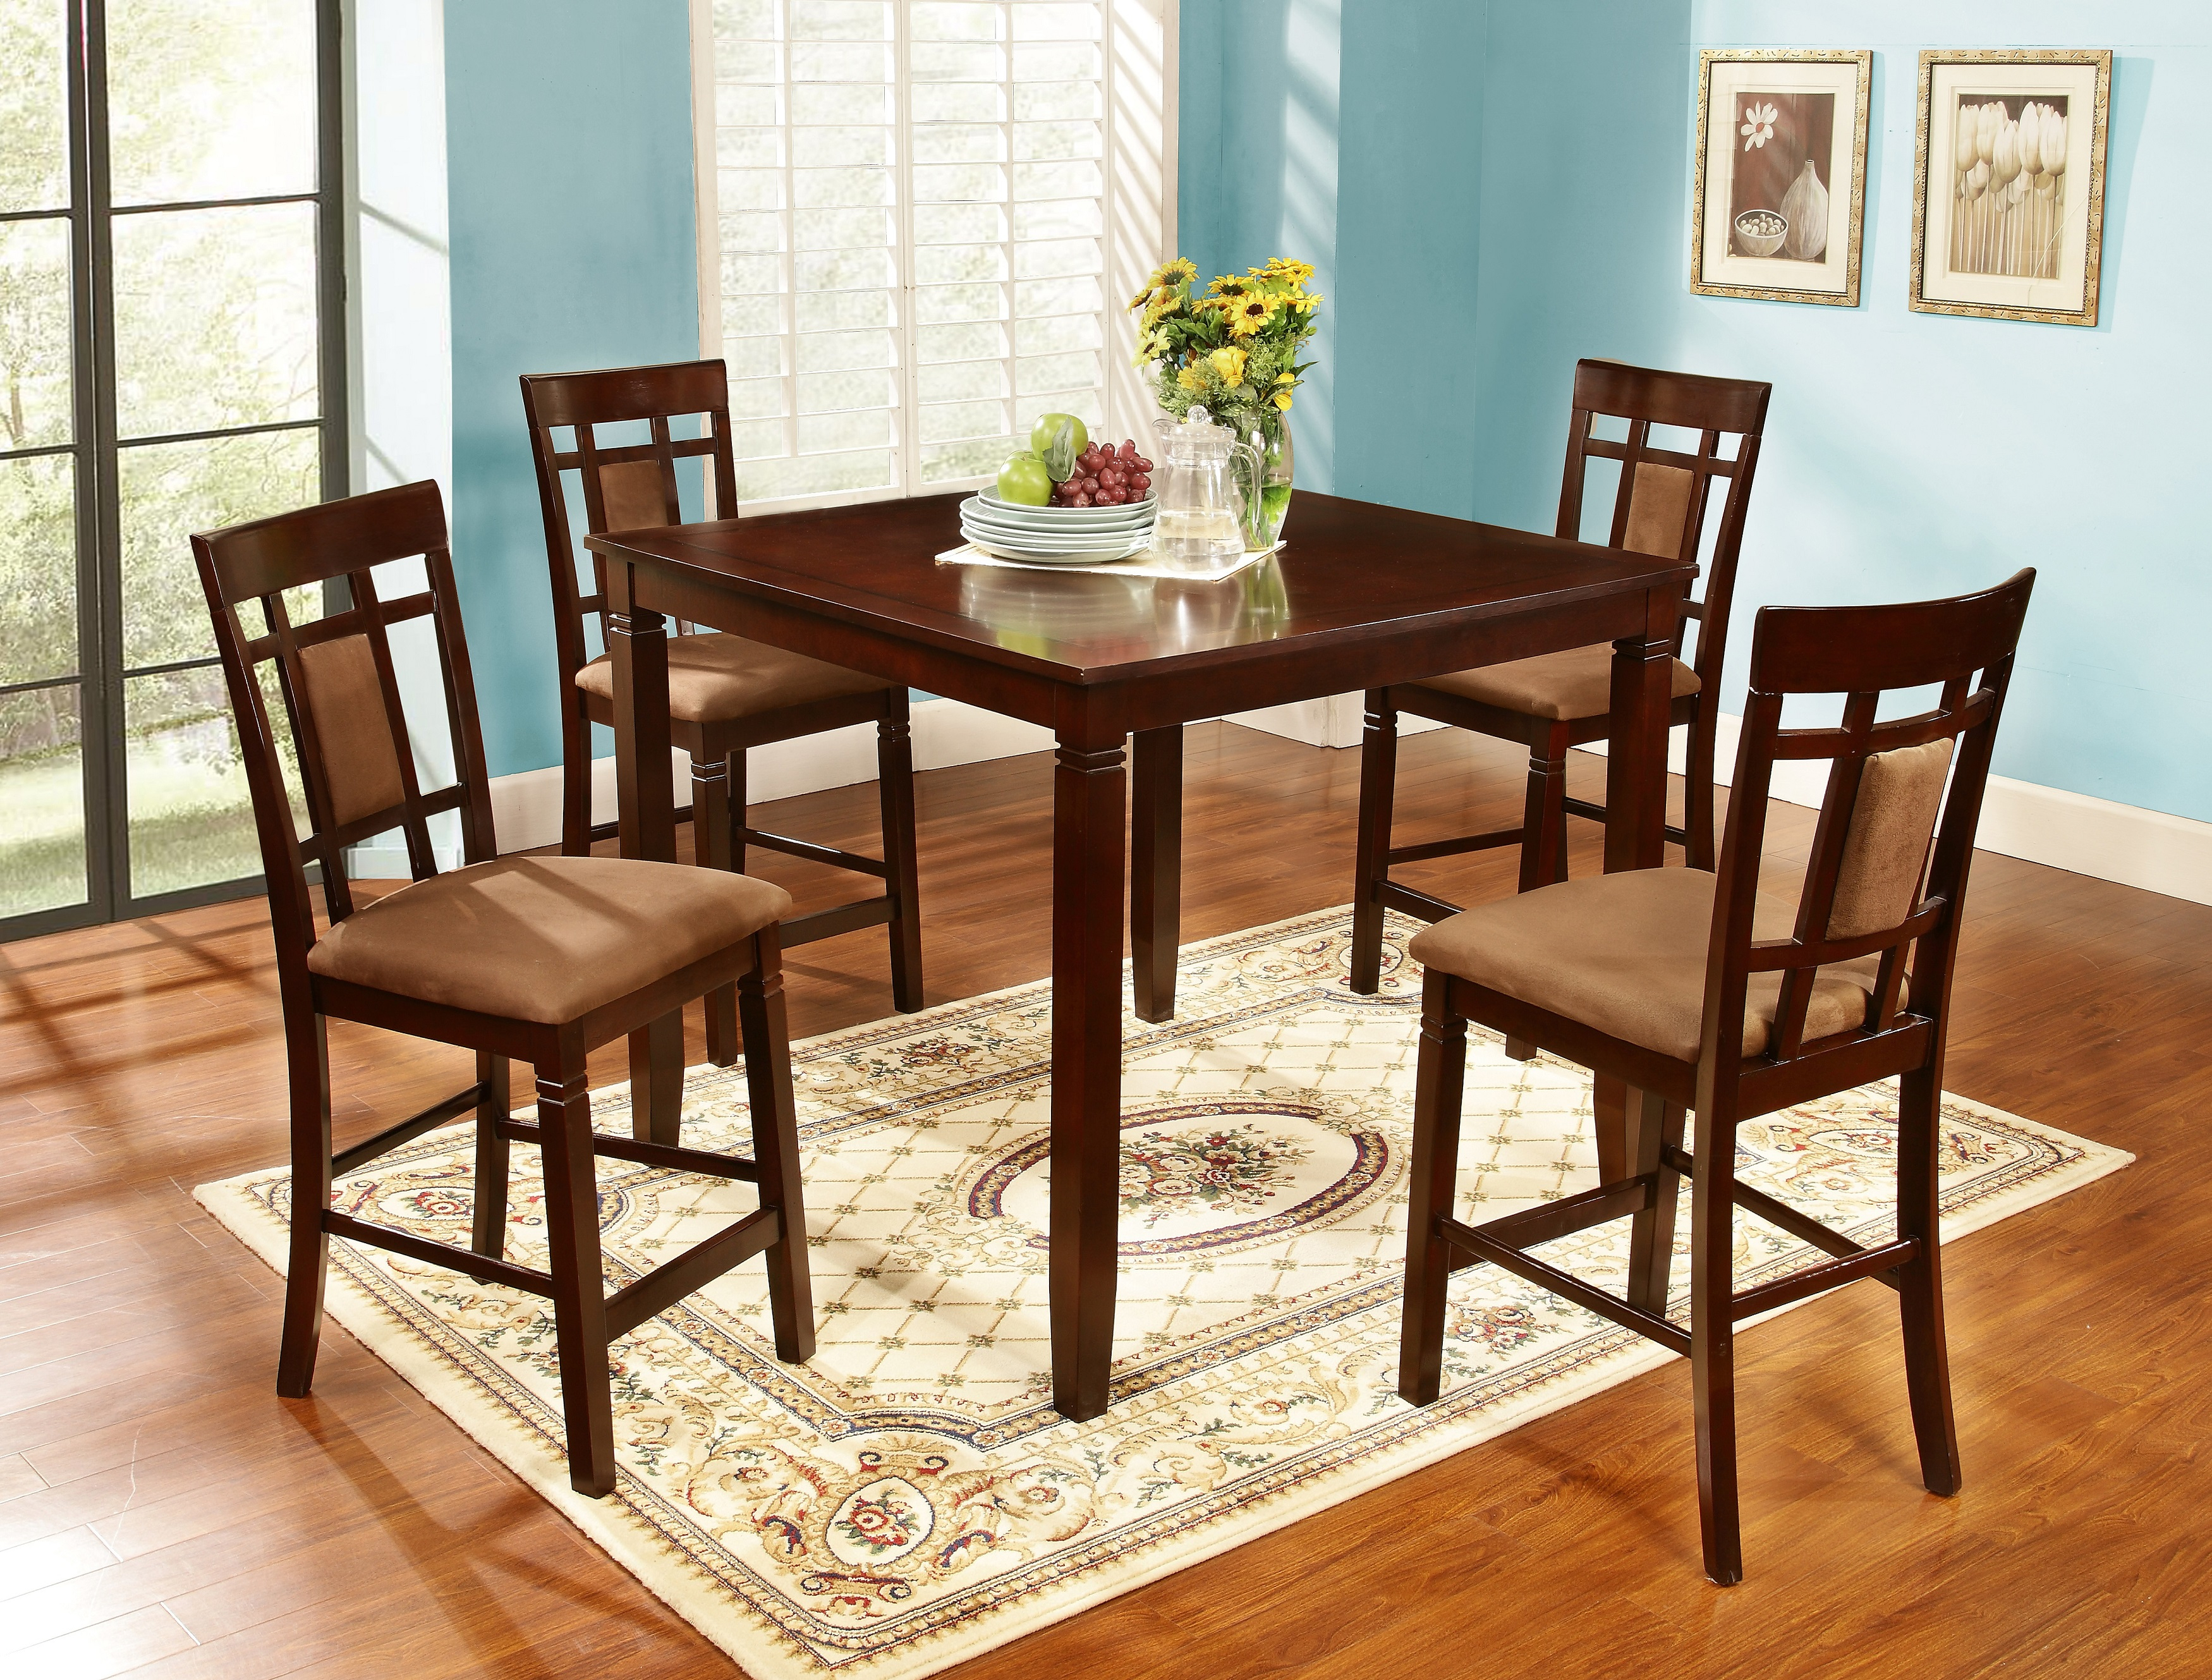 Bryson 5 Piece Dining Sets Throughout Current Bryson 5 Pcs Dining Set – Walmart (View 6 of 20)